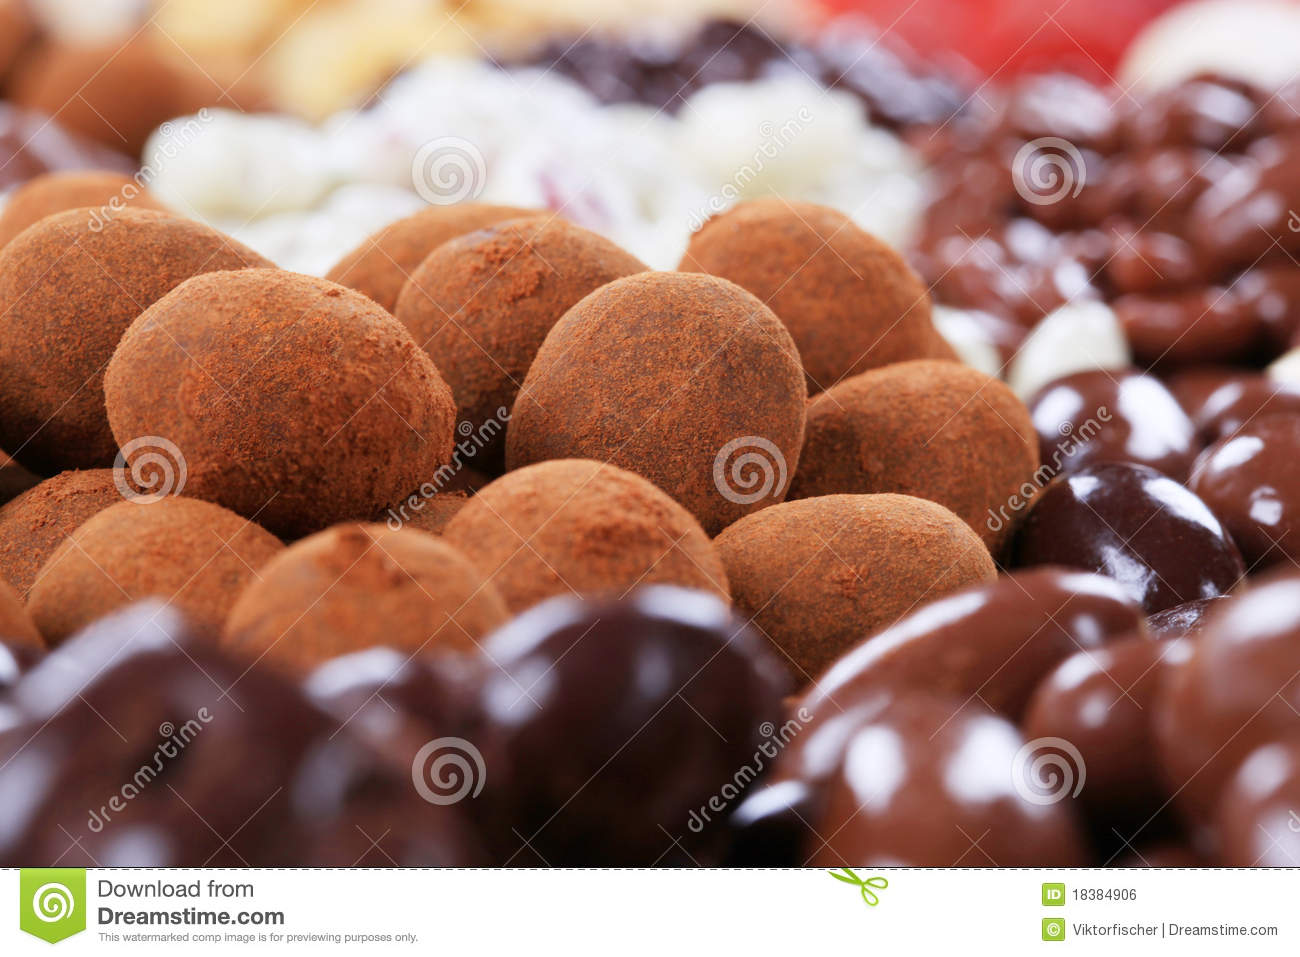 Chocolate Covered Nuts Royalty Free Stock Image - Image: 18384906